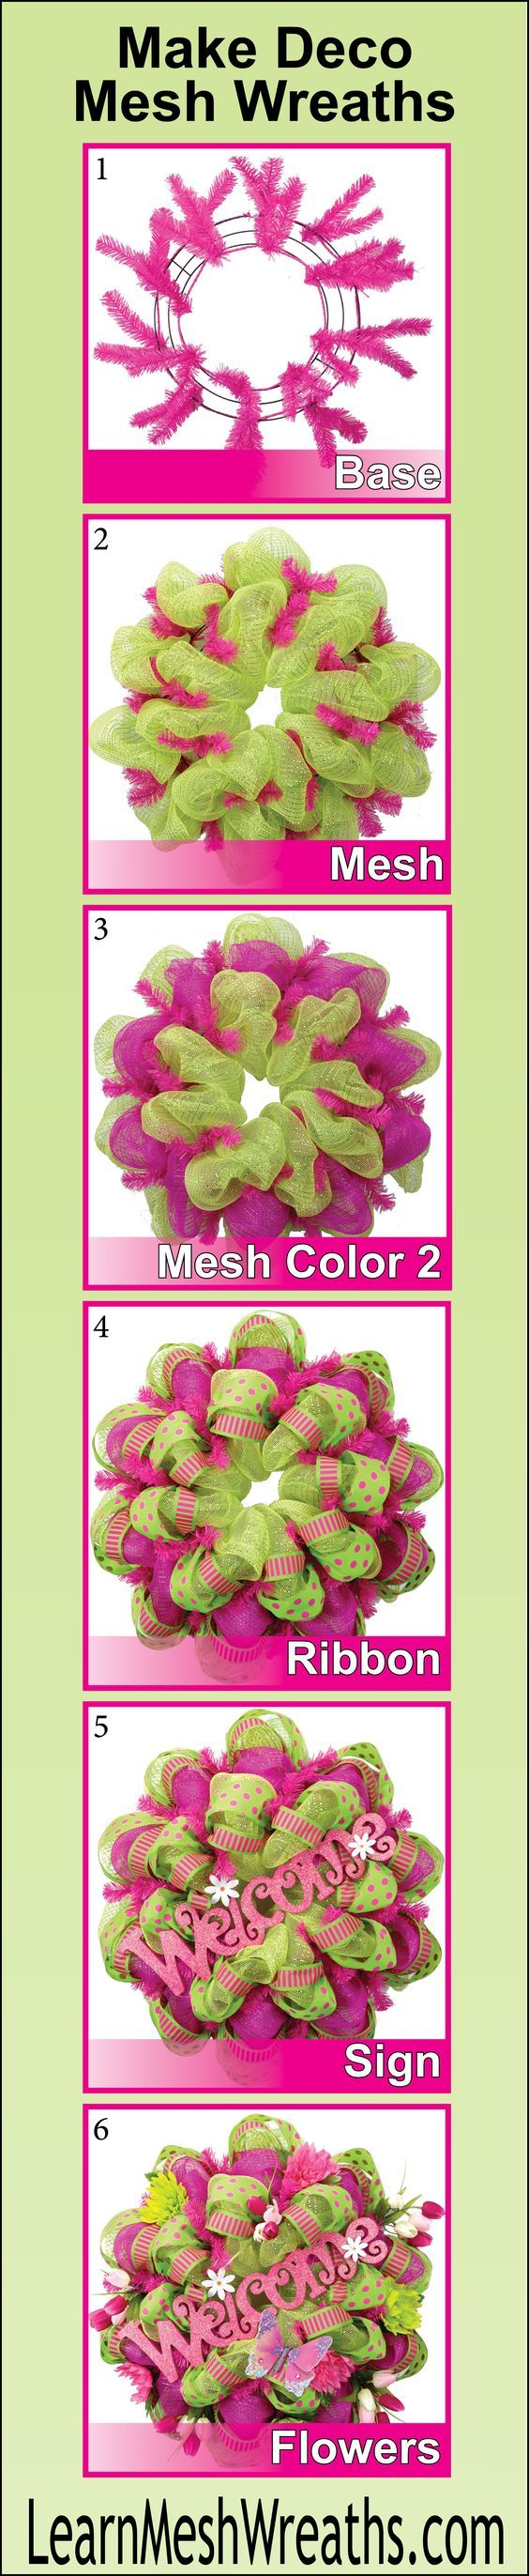 Join the deco mesh CRAZE! Learn step-by-step how to make beautiful mesh wreaths to give as gifts or sell online. Learn to make a perfect base, add mesh, ribbon, signs, ornaments and silk flowers. Plus bonuses on where to purchase supplies, how to ship wreaths, how to make garlands, and different styles of mesh wreaths. Click the picture to learn more. #decomesh #wreaths #DIY: